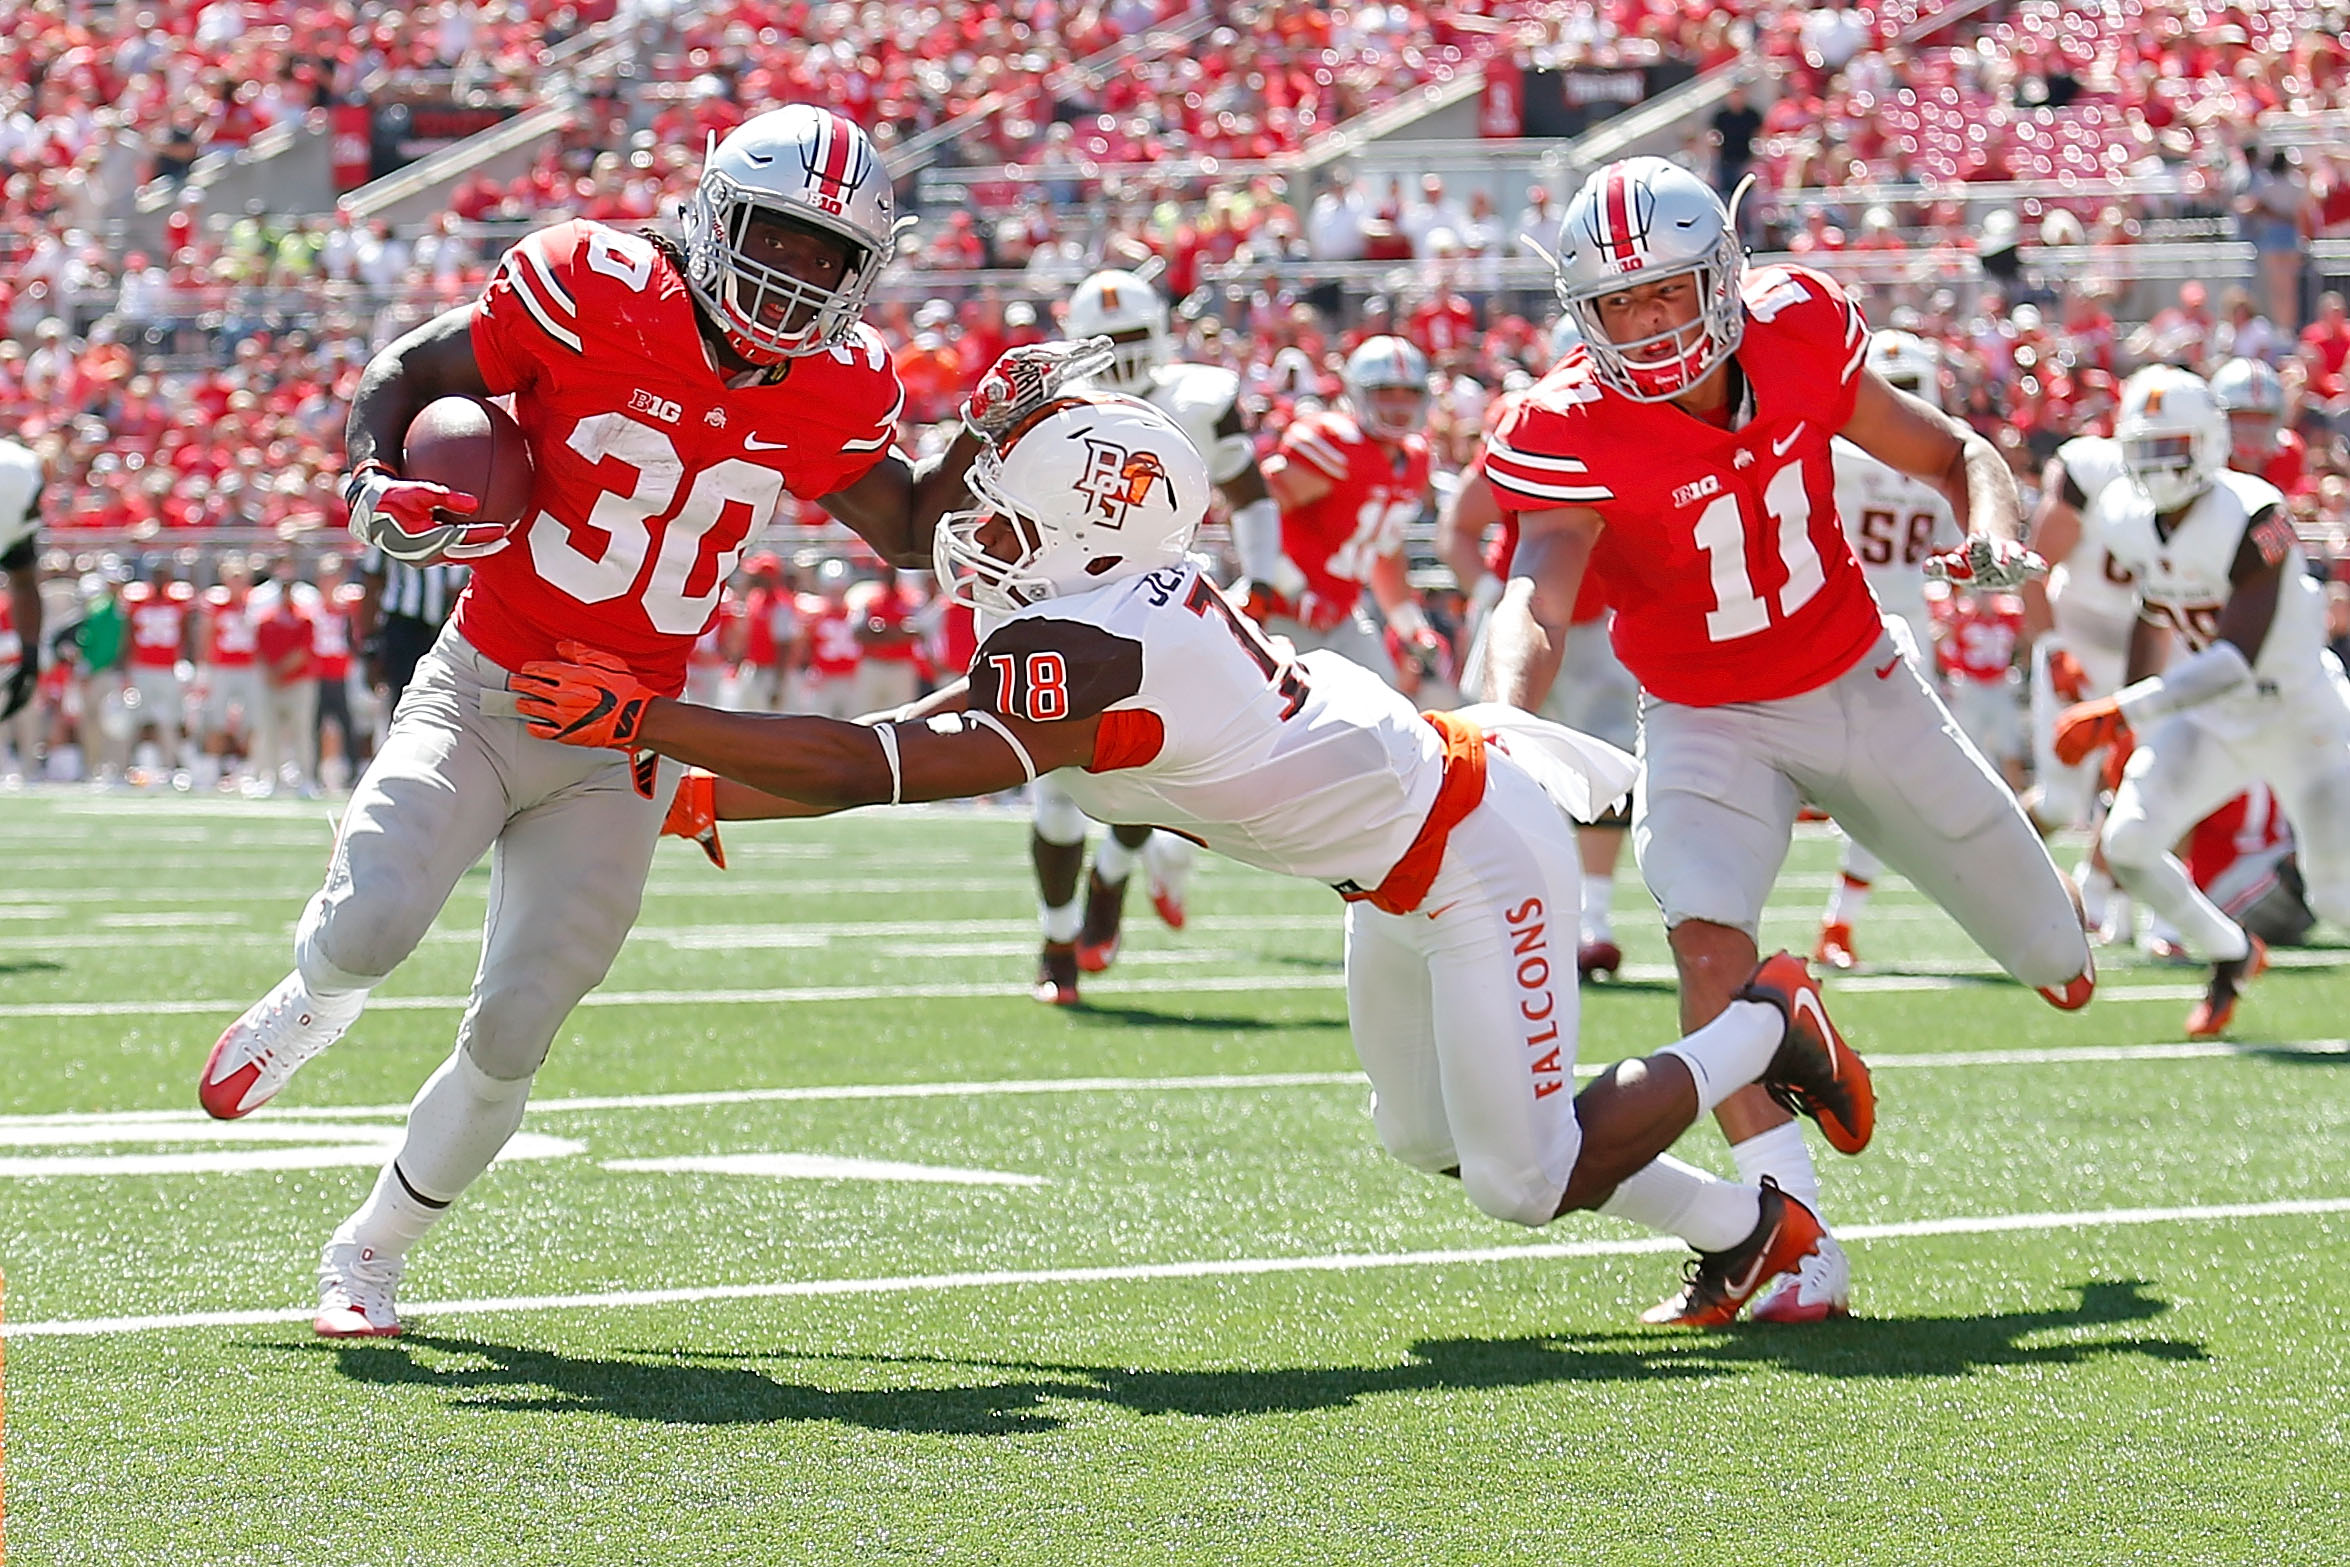 COLUMBUS, OH - SEPTEMBER 3:  Demario McCall #30 of the Ohio State Buckeyes stiff arms Cameron Jefferies #18 of the Bowling Green Falcons while carrying the ball during the fourth quarter on September 3, 2016 at Ohio Stadium in Columbus, Ohio. Ohio State defeated Bowling Green 77-10. (Photo by Kirk Irwin/Getty Images)